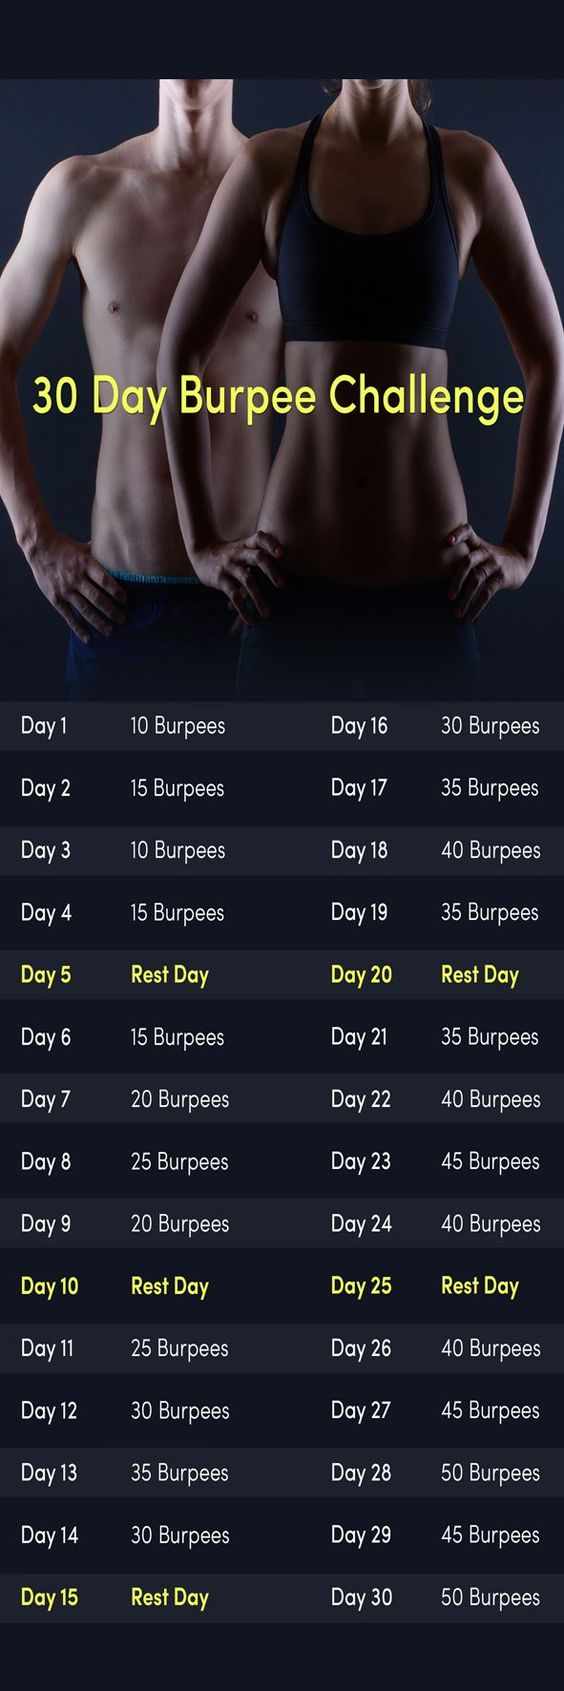 Join our 30 day BURPEE CHALLENGE to work your entire body and strengthen your core in under a month. Simply print out the plan and perform the number of burpees for each day. If you already feel confident with your burpees, ramp up your challenge by doubling the time each day! UNSURE OF HOW TO DO PROPERLY BURPEES? CHECK OUT OUR 'HOW TO' VIDEO! #burpee #fitnesschallenge #30daychallenge #burpeechallenge #coreworkout #weightloss #muffintop